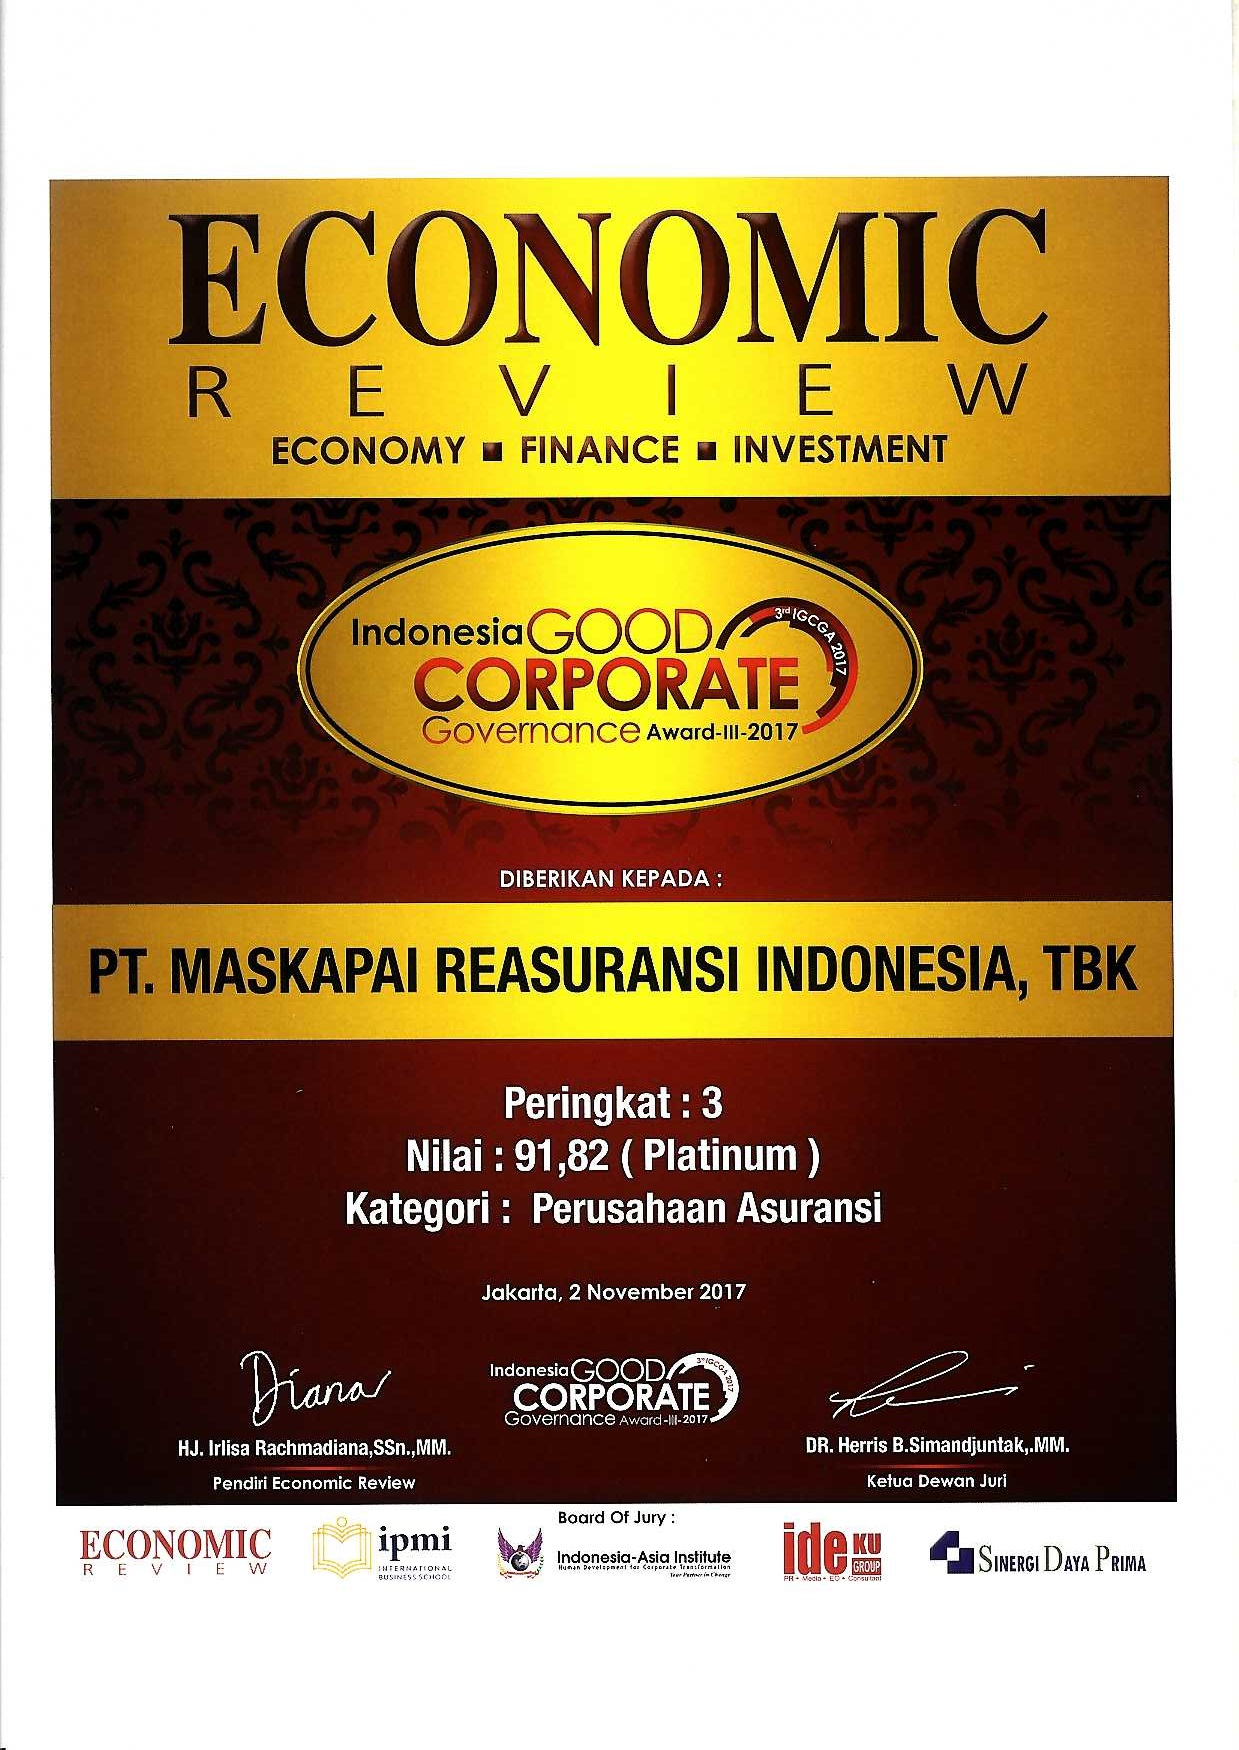 Majalah Economic Review : 3rd Rank Good Corporate Governance Award Insurance Company Category